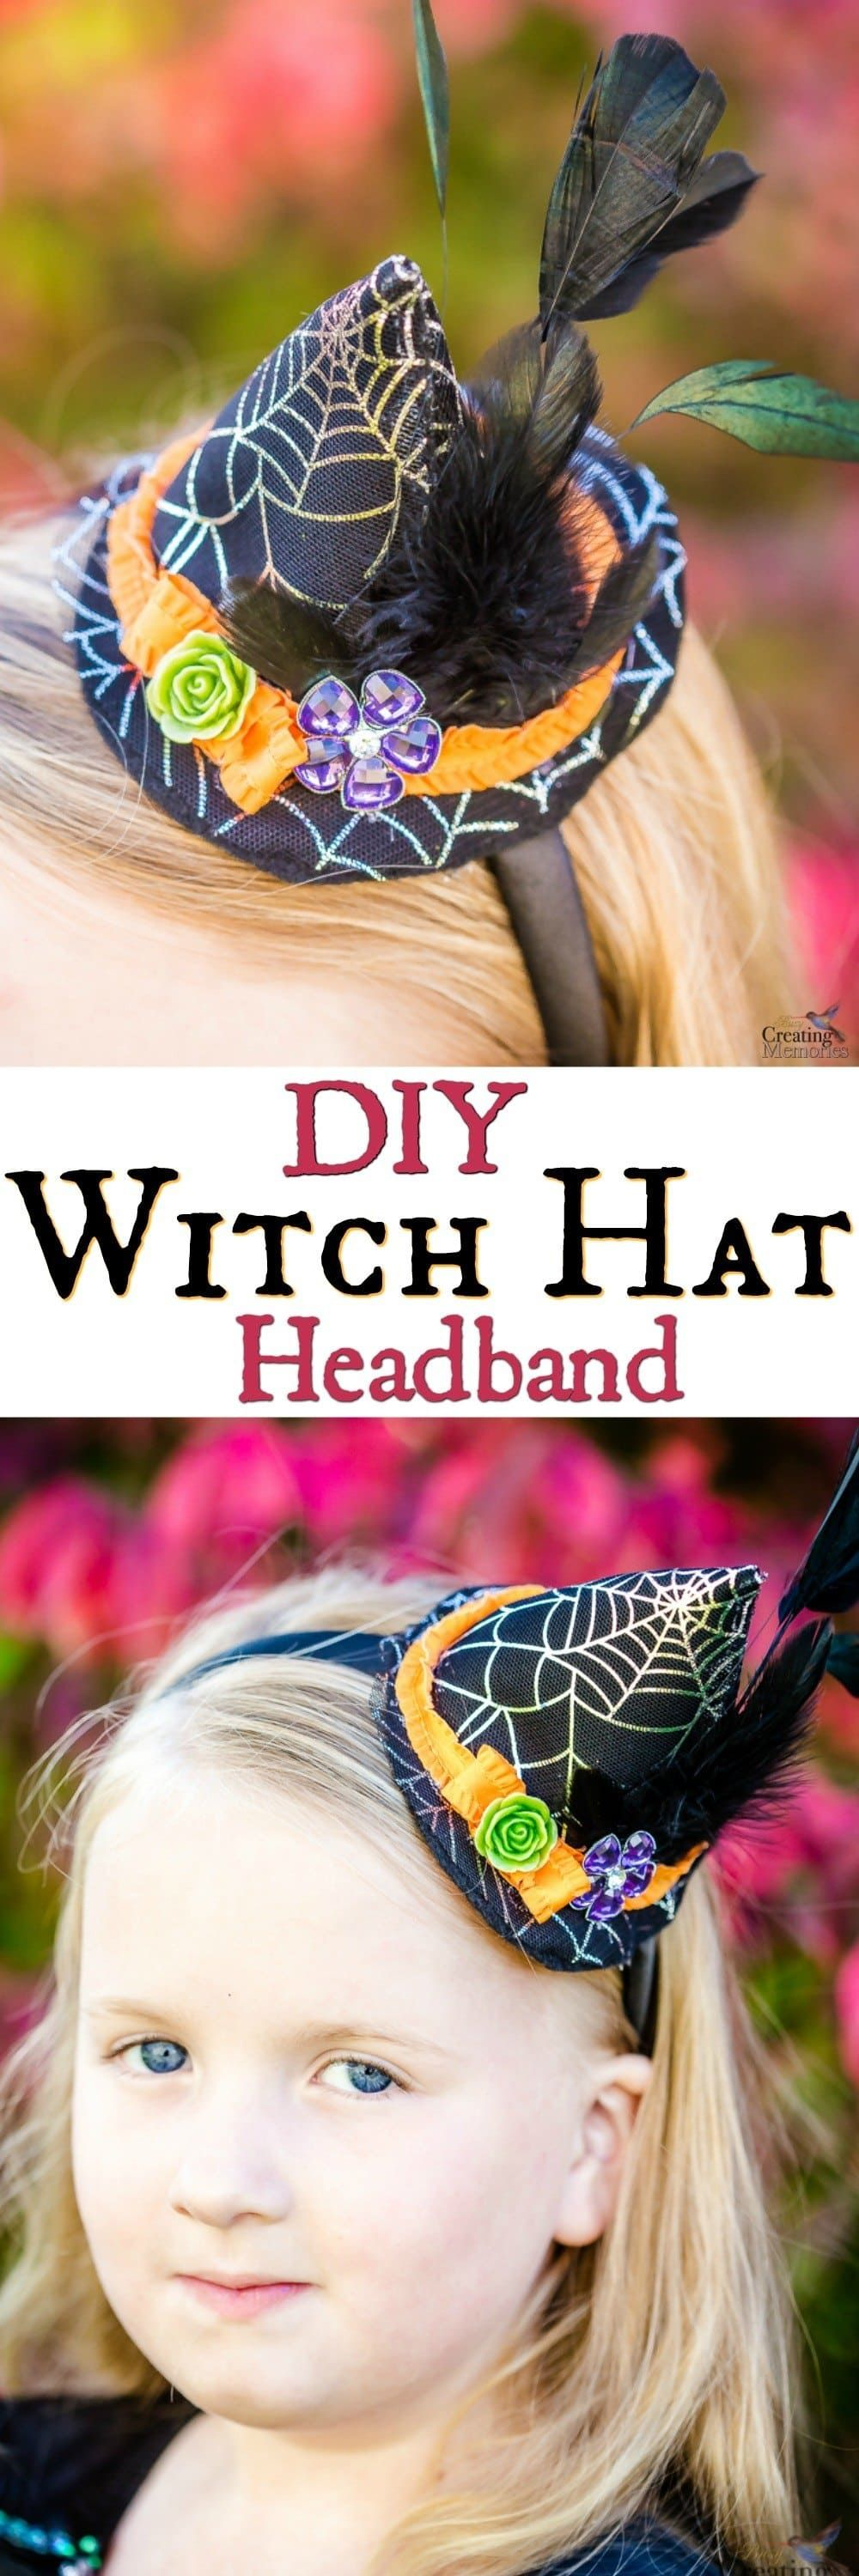 e41adc66258 This is a quick and easy step by step DIY tutorial pattern on how to make a Mini  witch hat headband for your baby